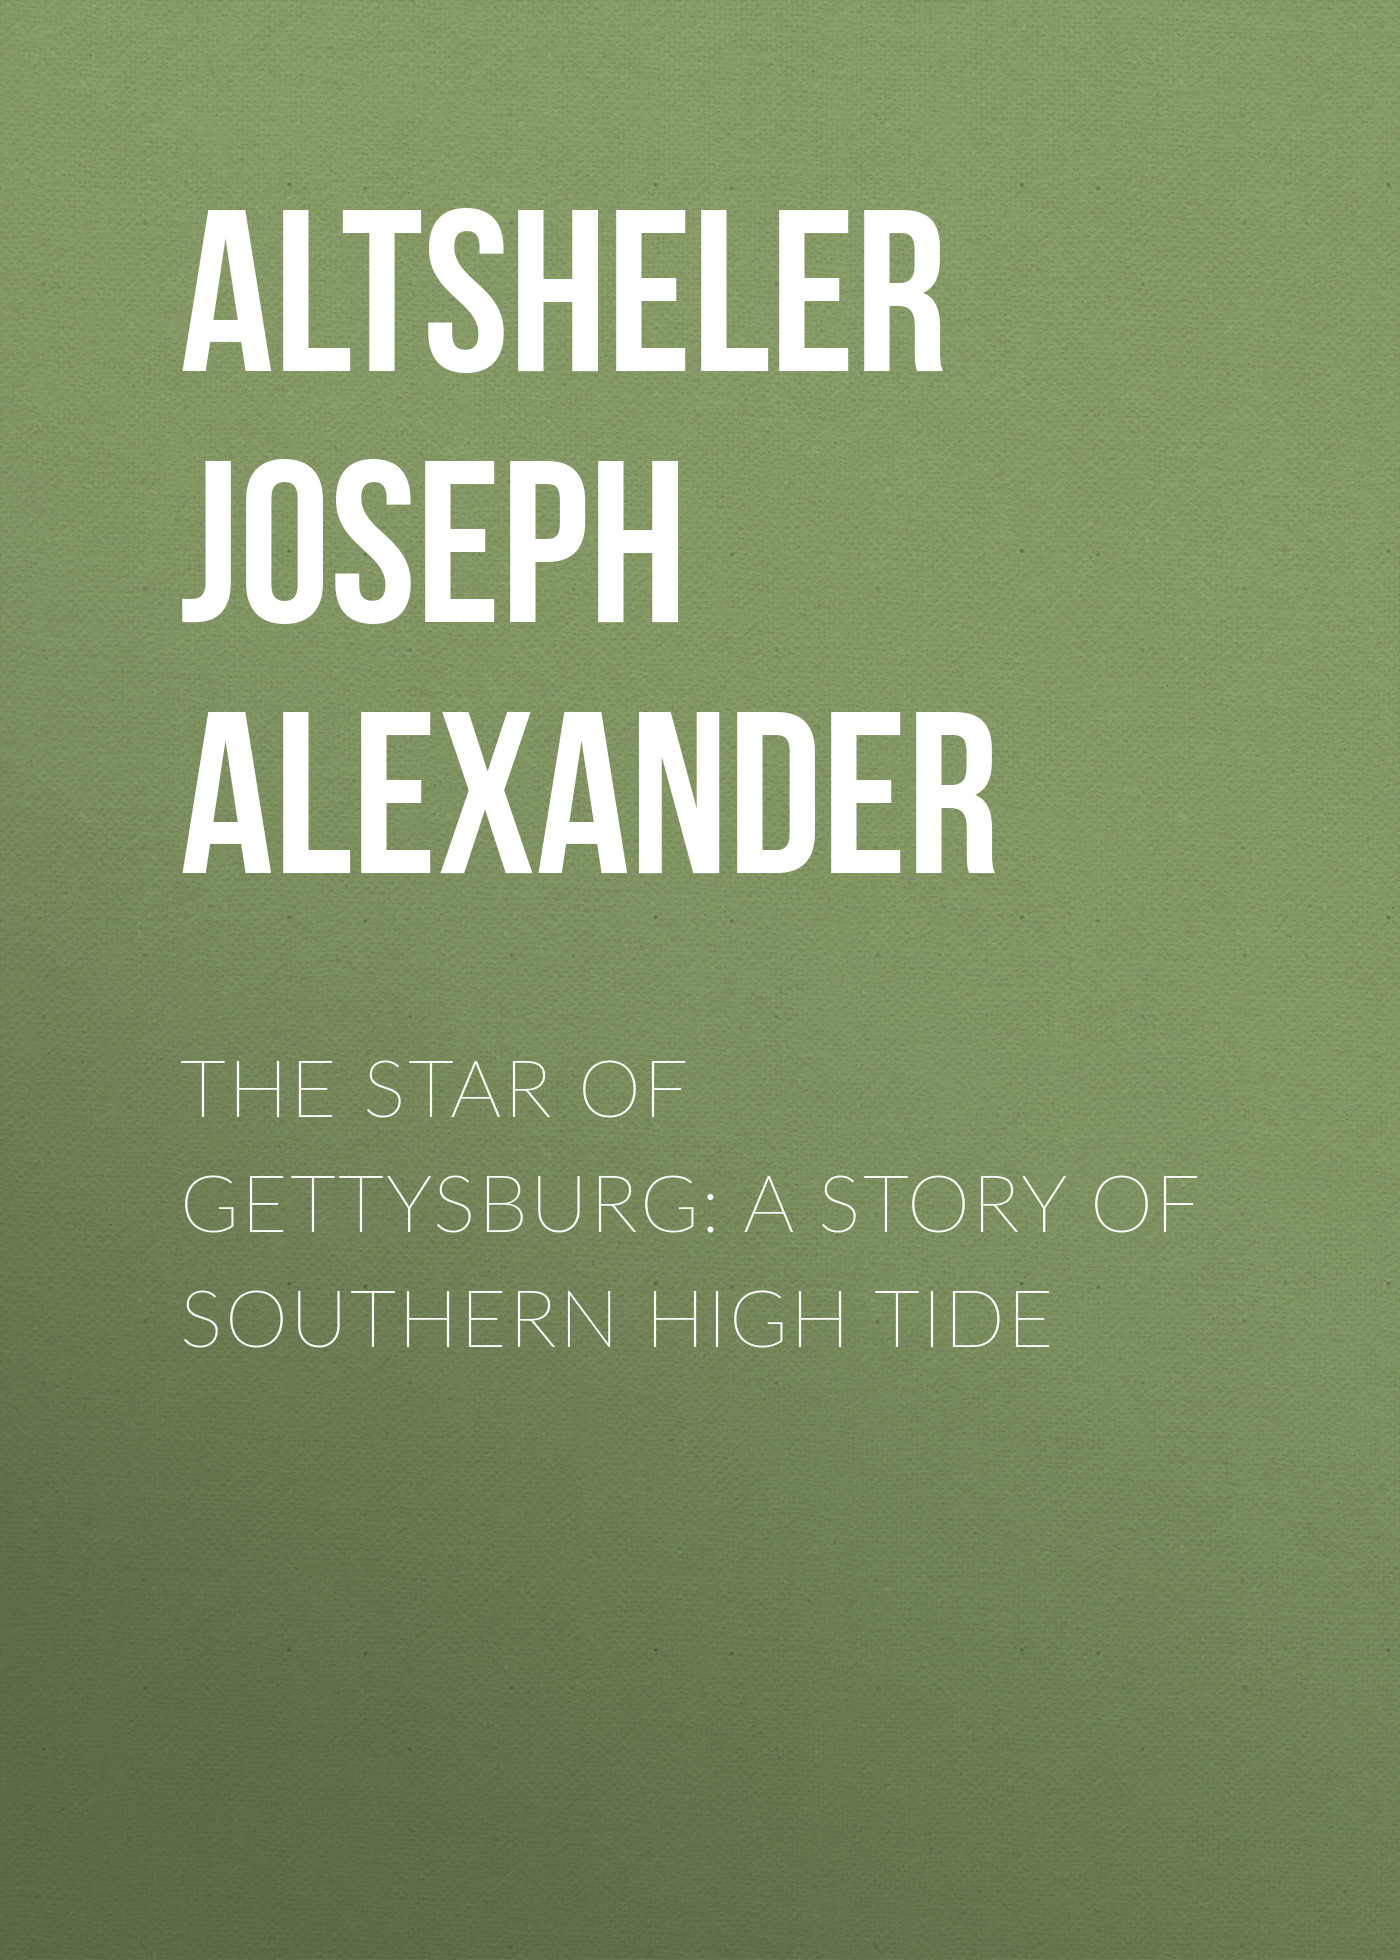 Altsheler Joseph Alexander The Star of Gettysburg: A Story of Southern High Tide